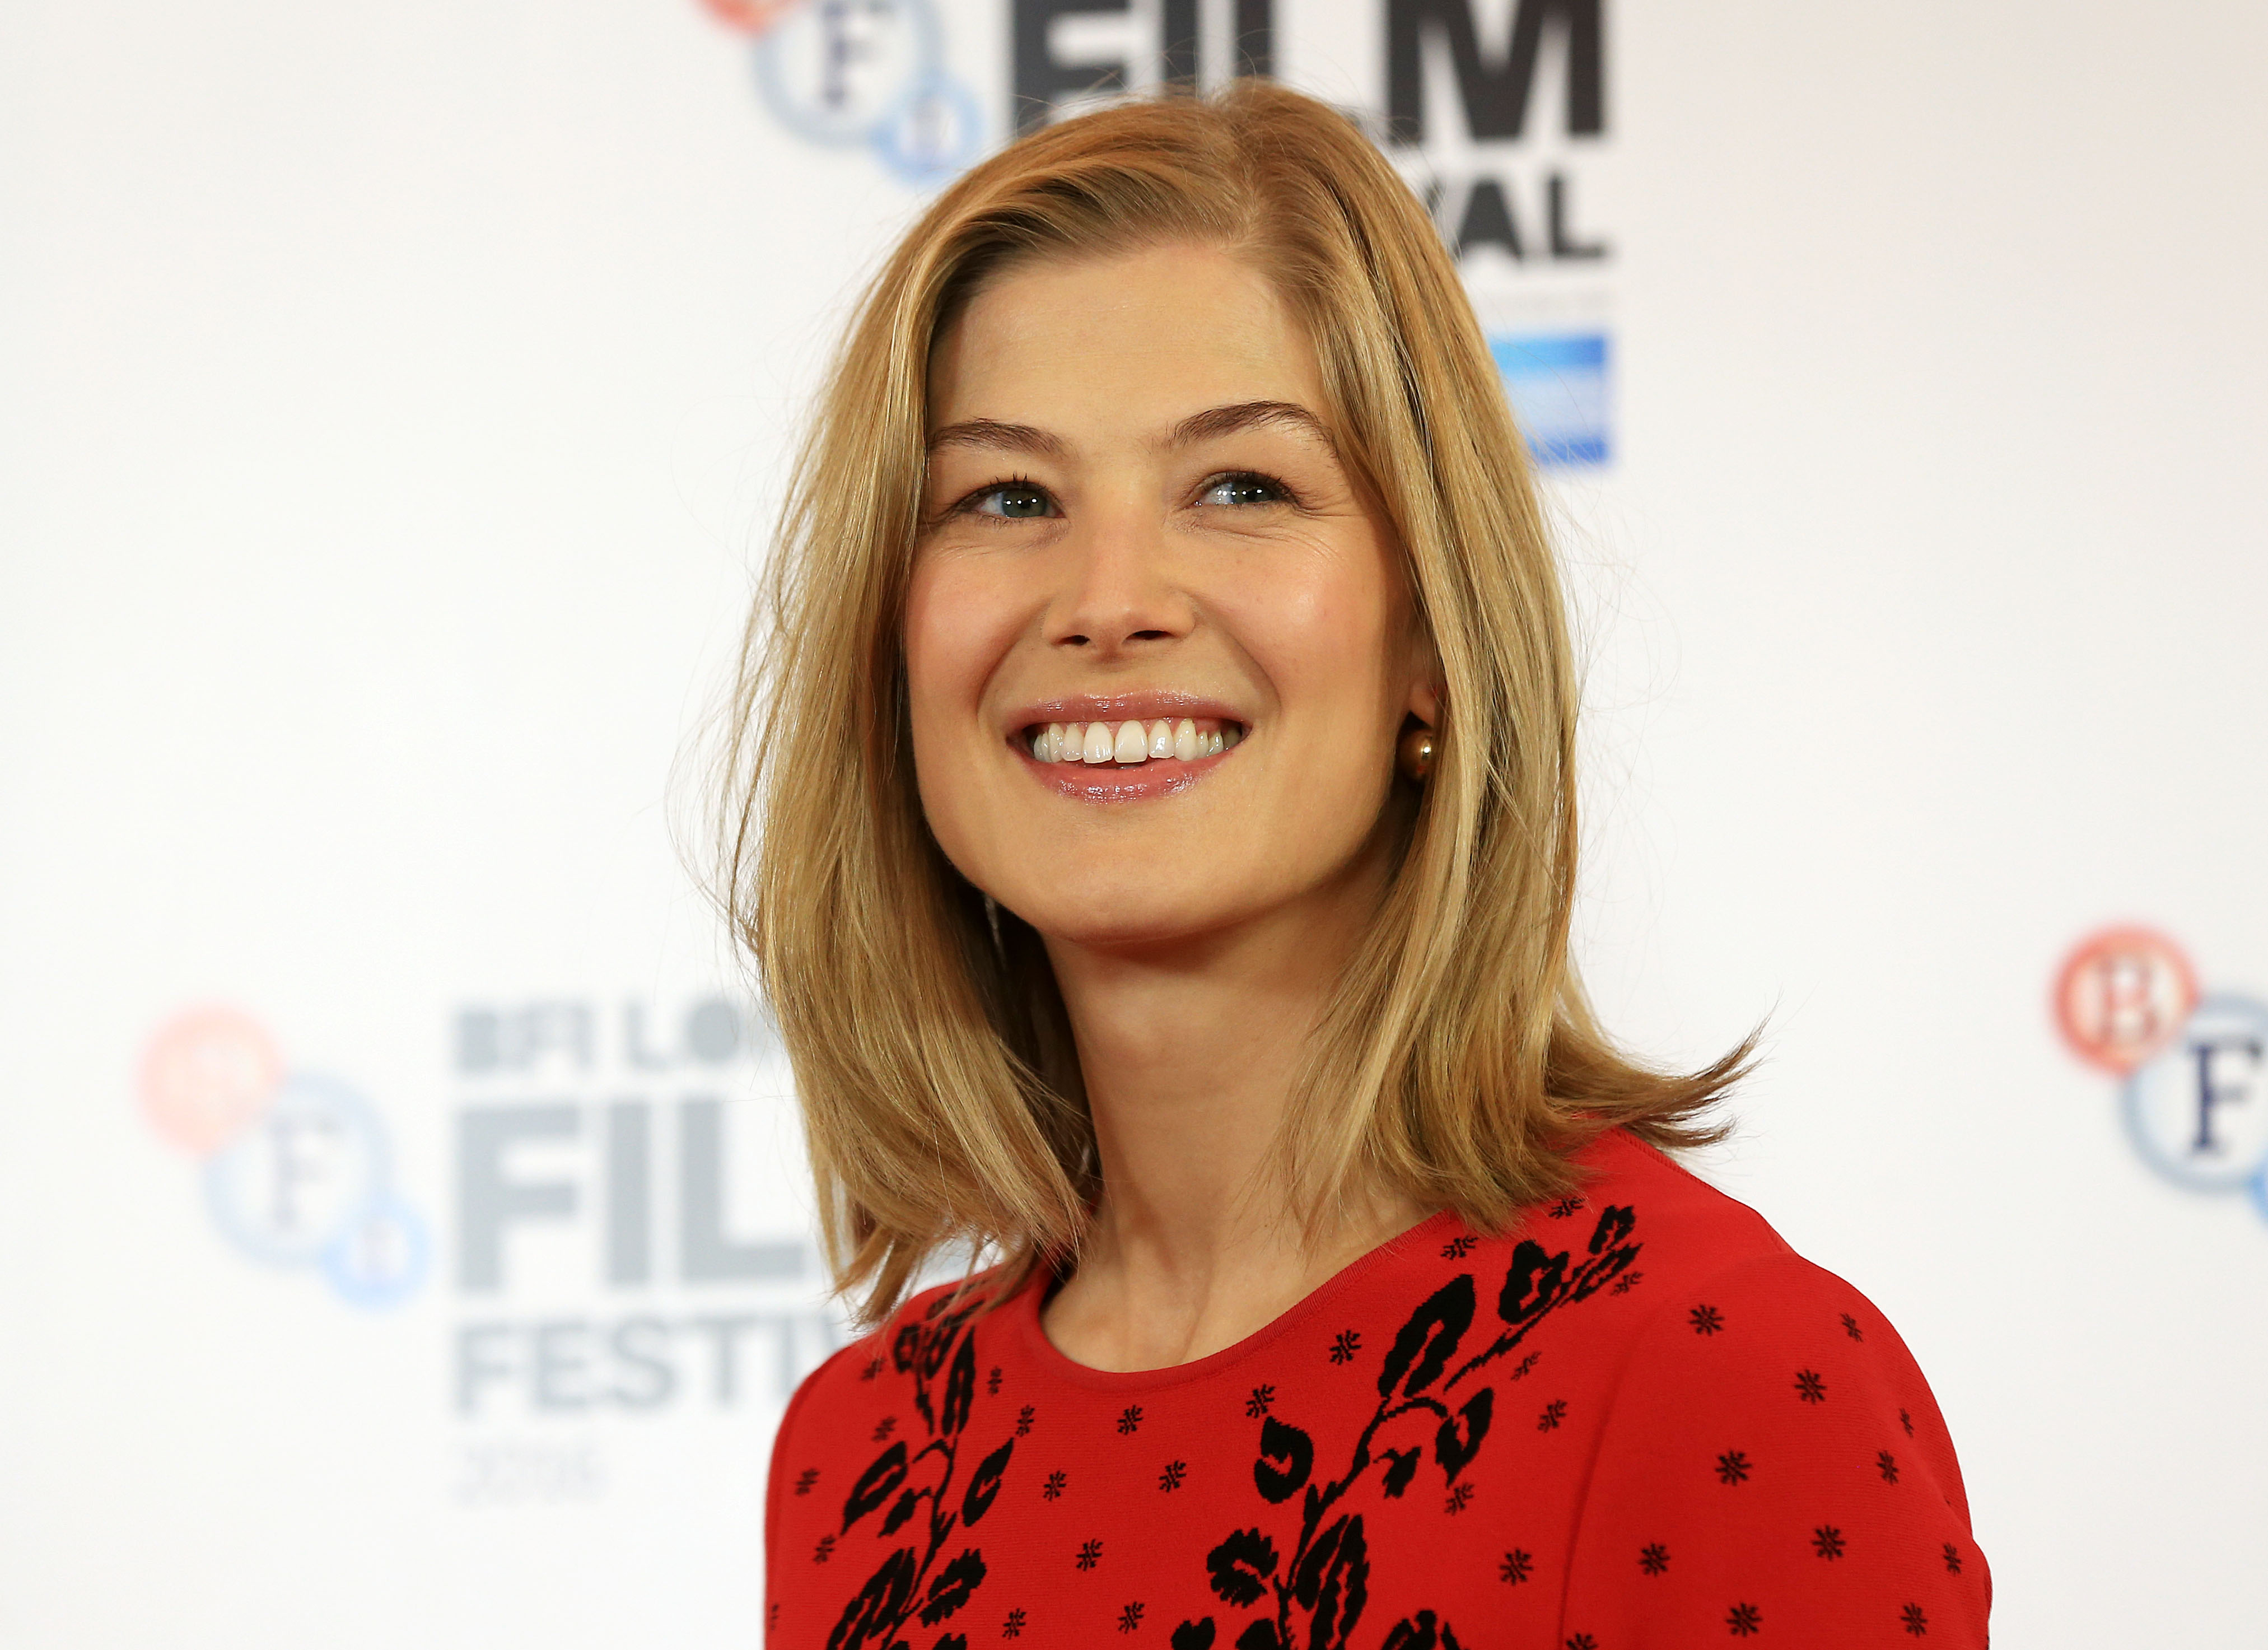 Rosamund Pike nude (51 photos), Tits, Leaked, Instagram, swimsuit 2018